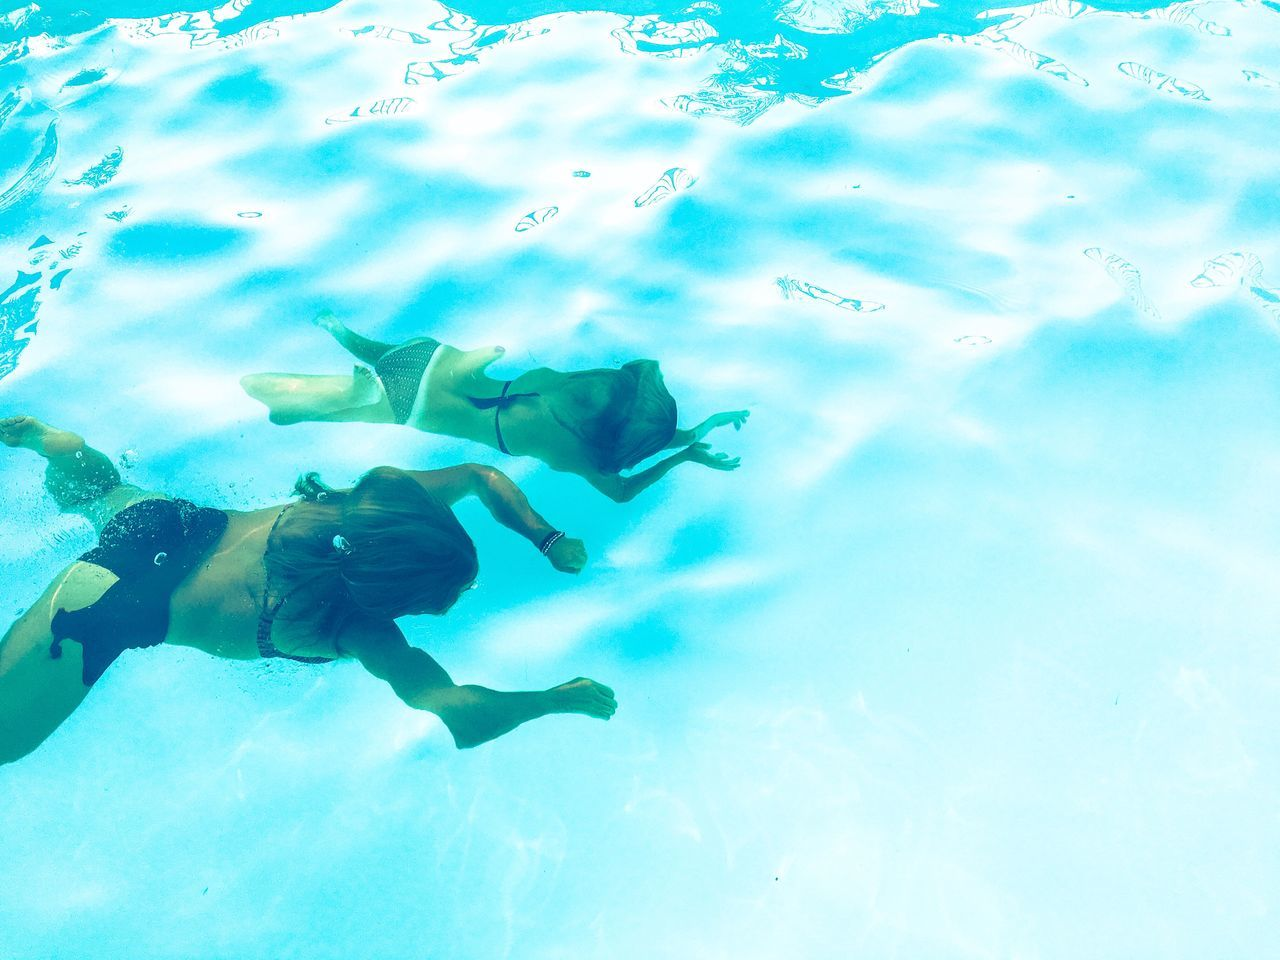 water, swimming, underwater, scuba diving, real people, leisure activity, adventure, two people, undersea, exploration, swimming pool, nature, blue, sea, scuba diver, togetherness, vacations, beauty in nature, men, day, outdoors, people